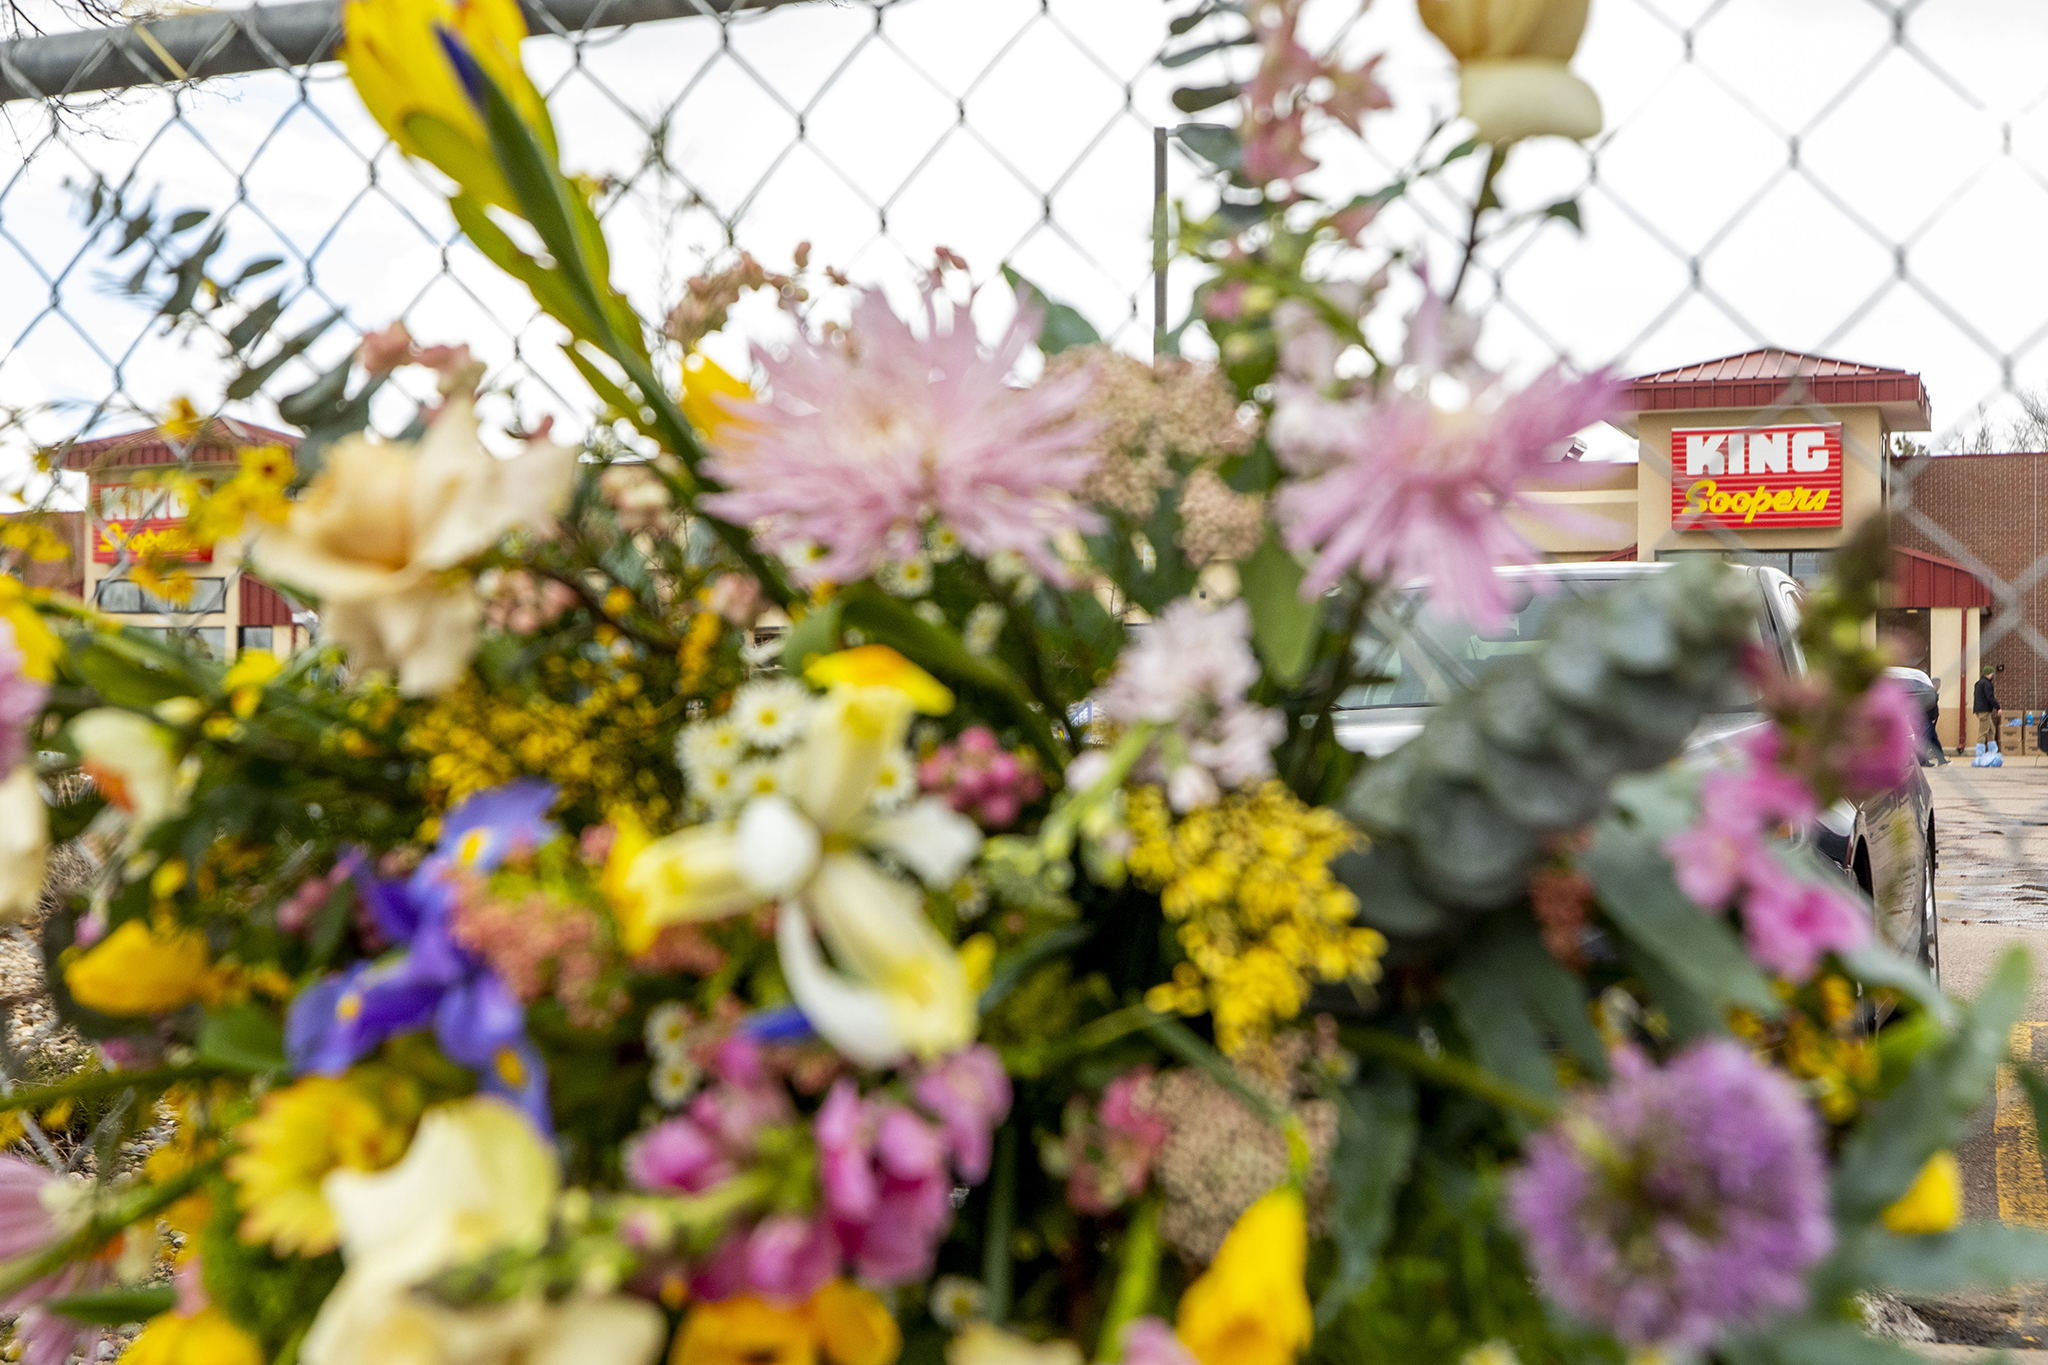 Hundreds of people visited the site of a mass shooting at a Boulder, Colo. King Soopers to leave flowers, cards and candles on March 23, 2021.